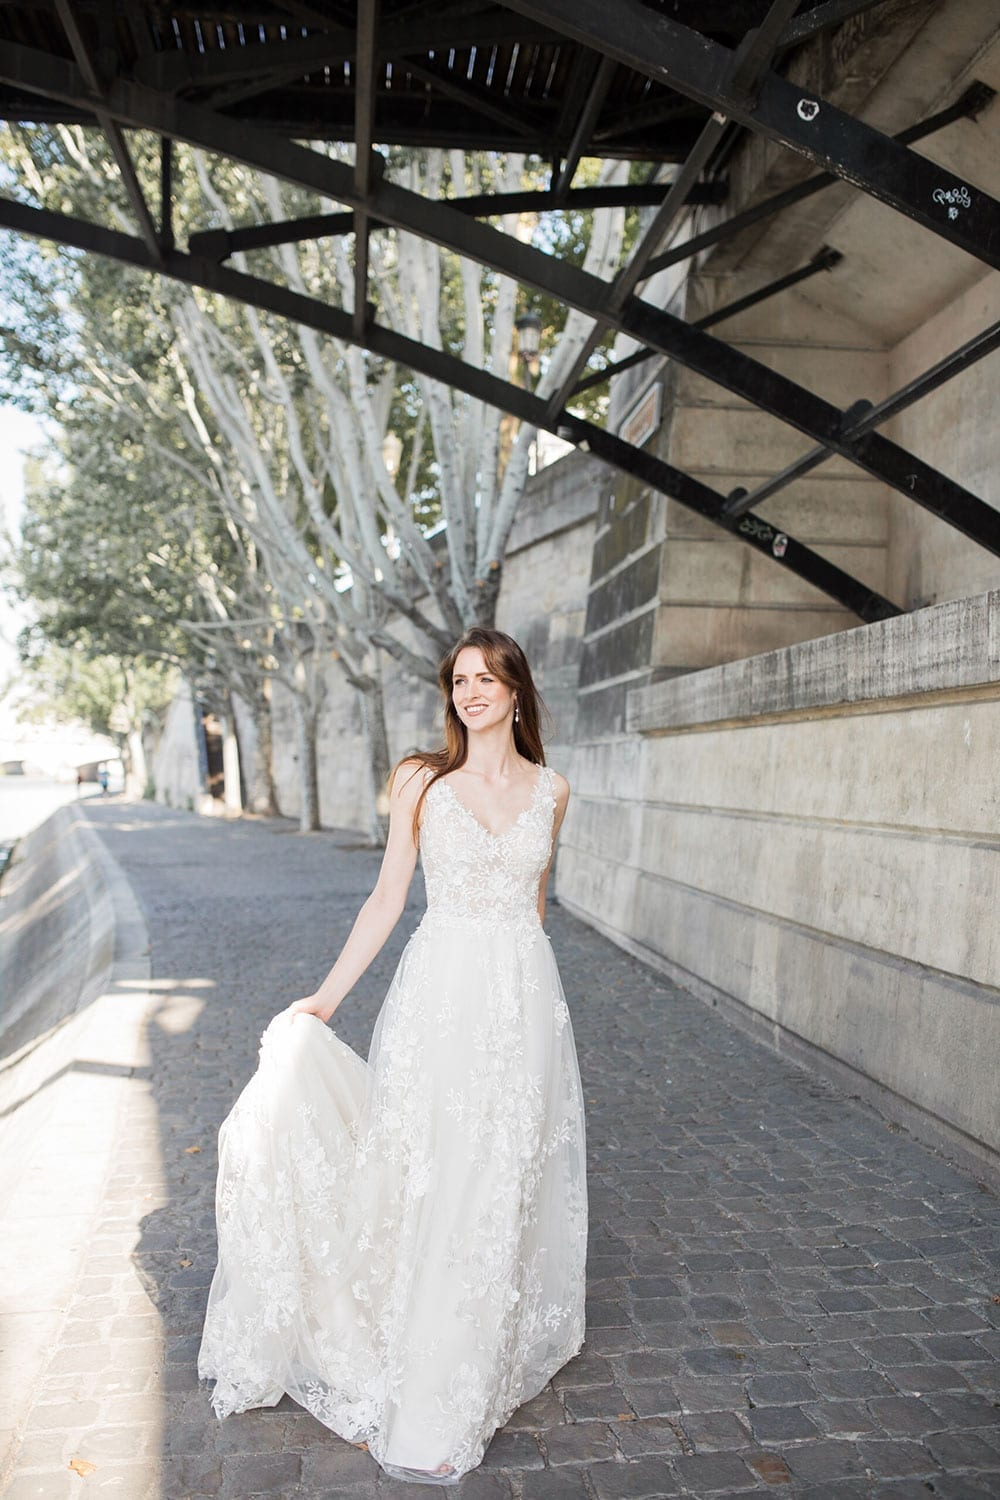 Model wearing Vinka Design Delta Wedding Dress, a Romantic v-neck wedding dress with a soft silhouette of layers of tulle & delicate 3D lace and sheer bodice on Parisian path under bridge.